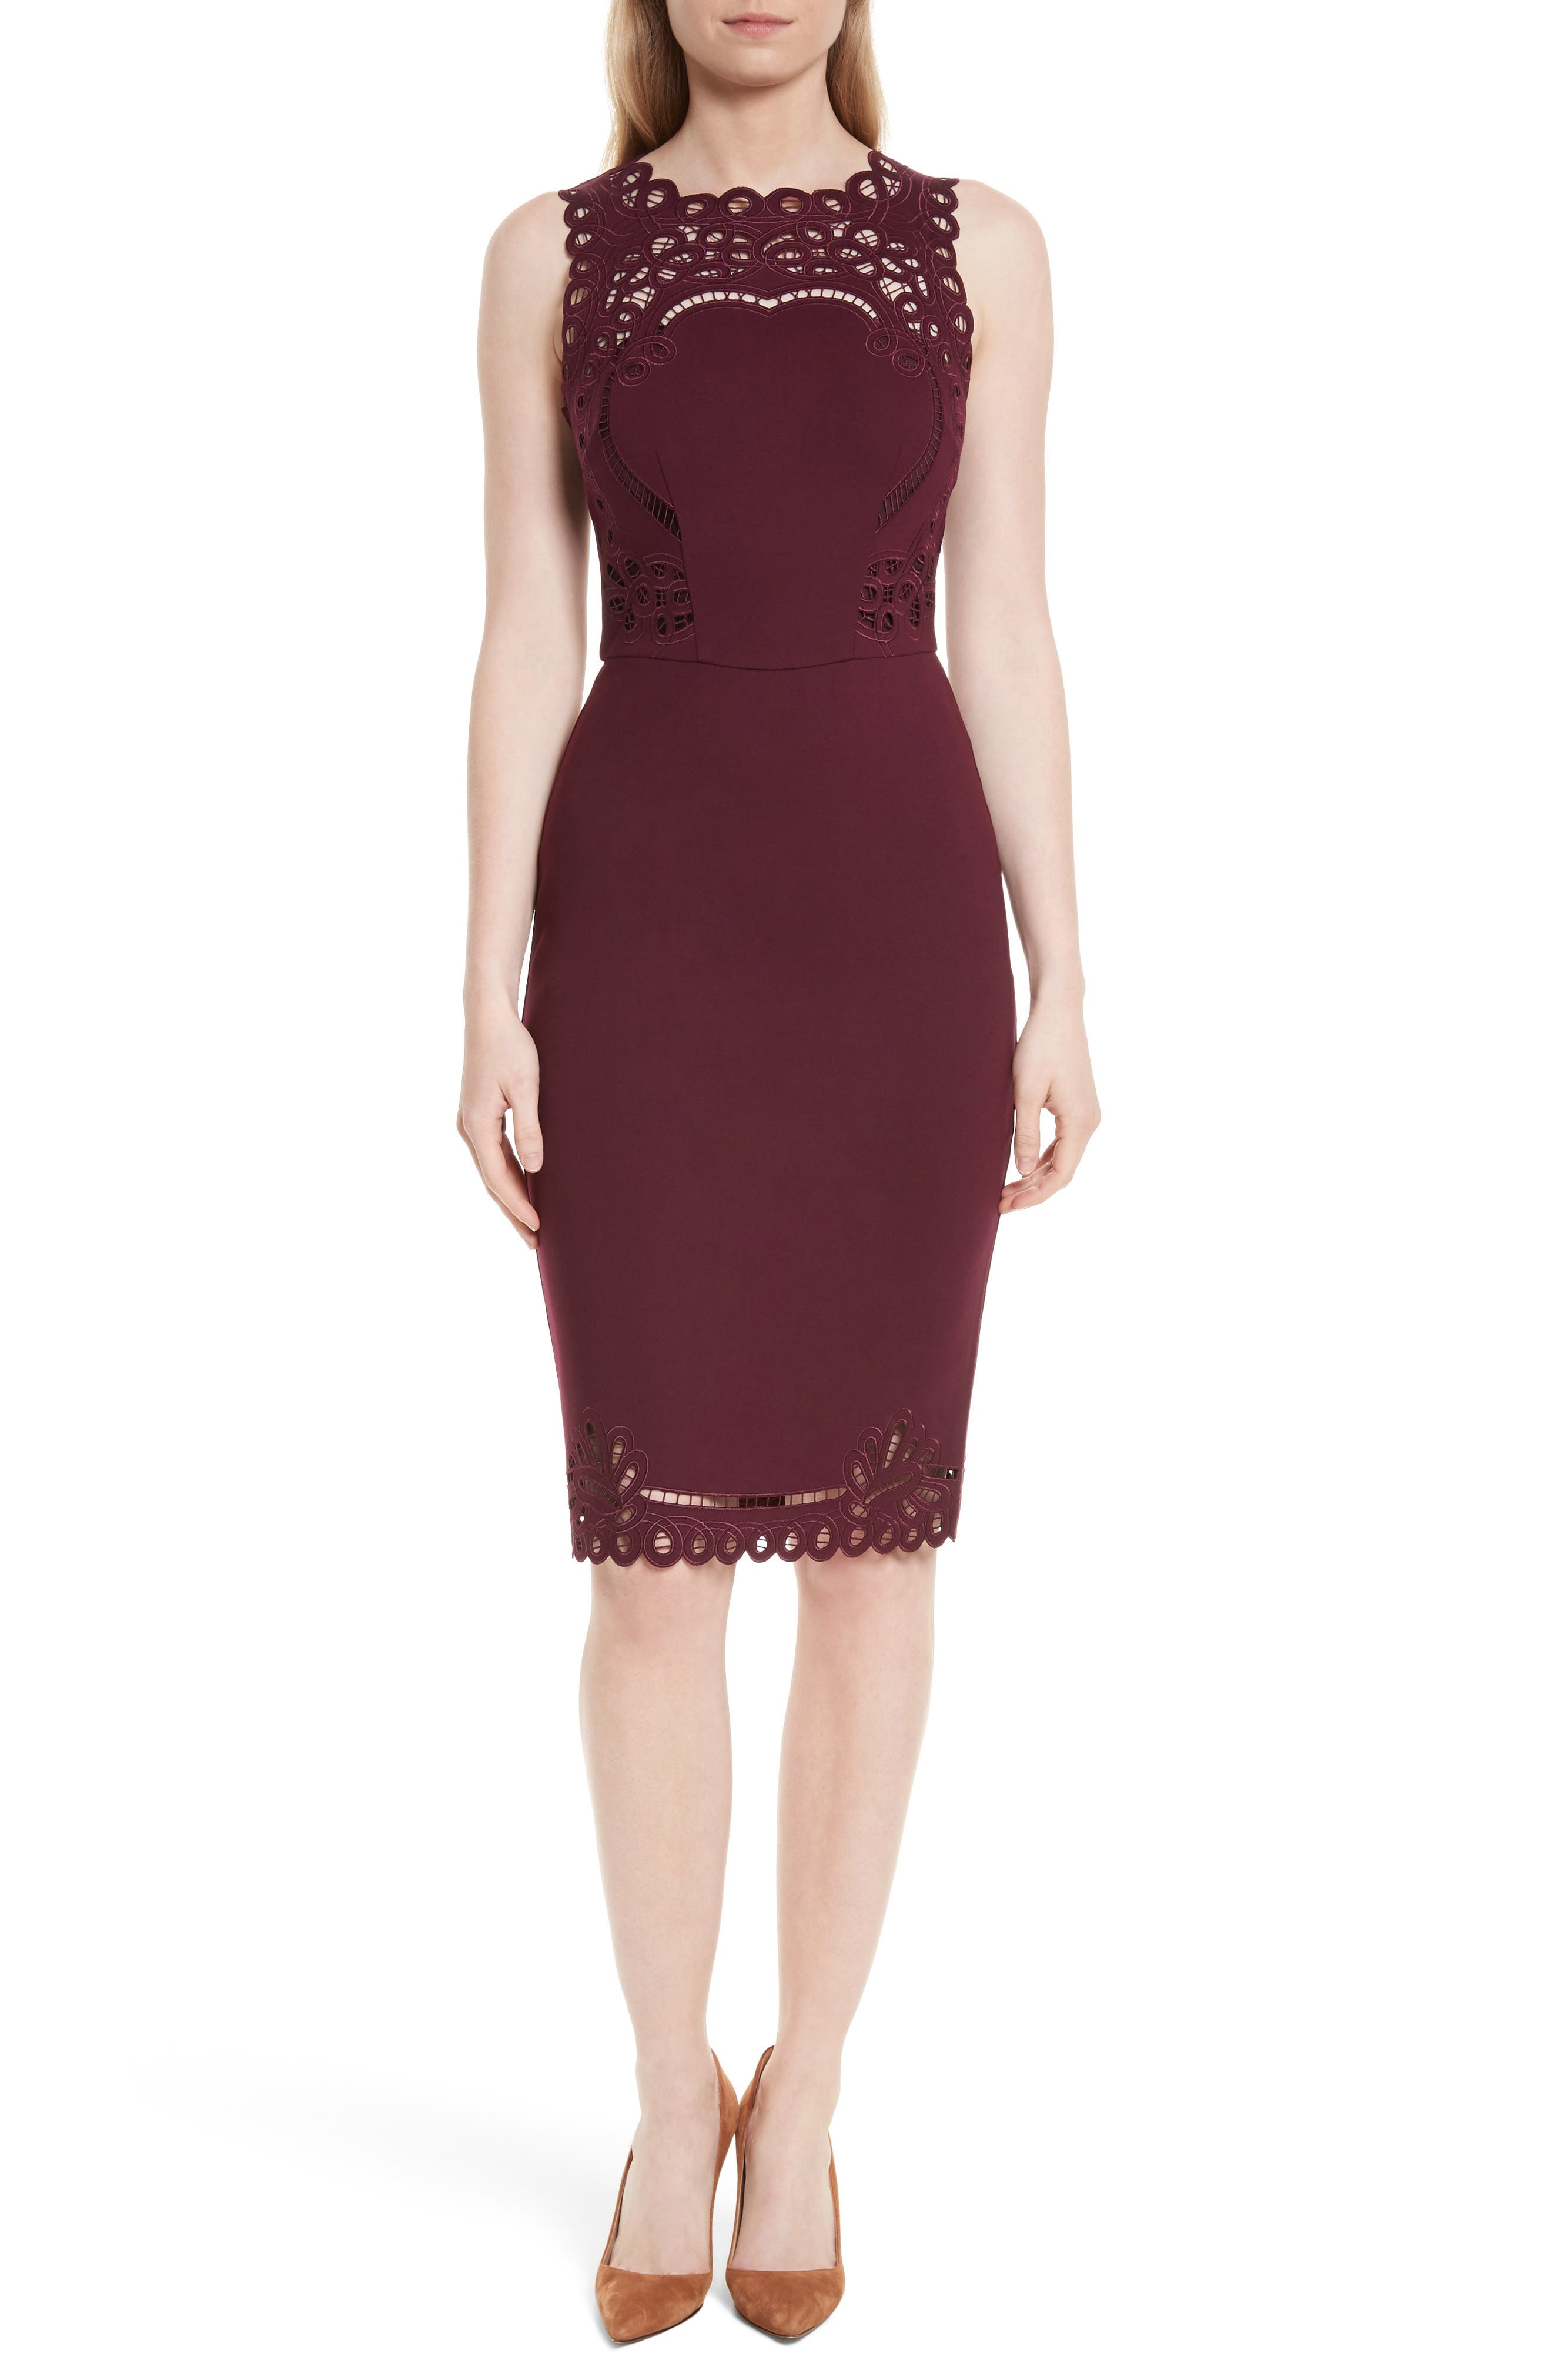 Verita Cutout Yoke Sheath Dress,                         Main,                         color, 930